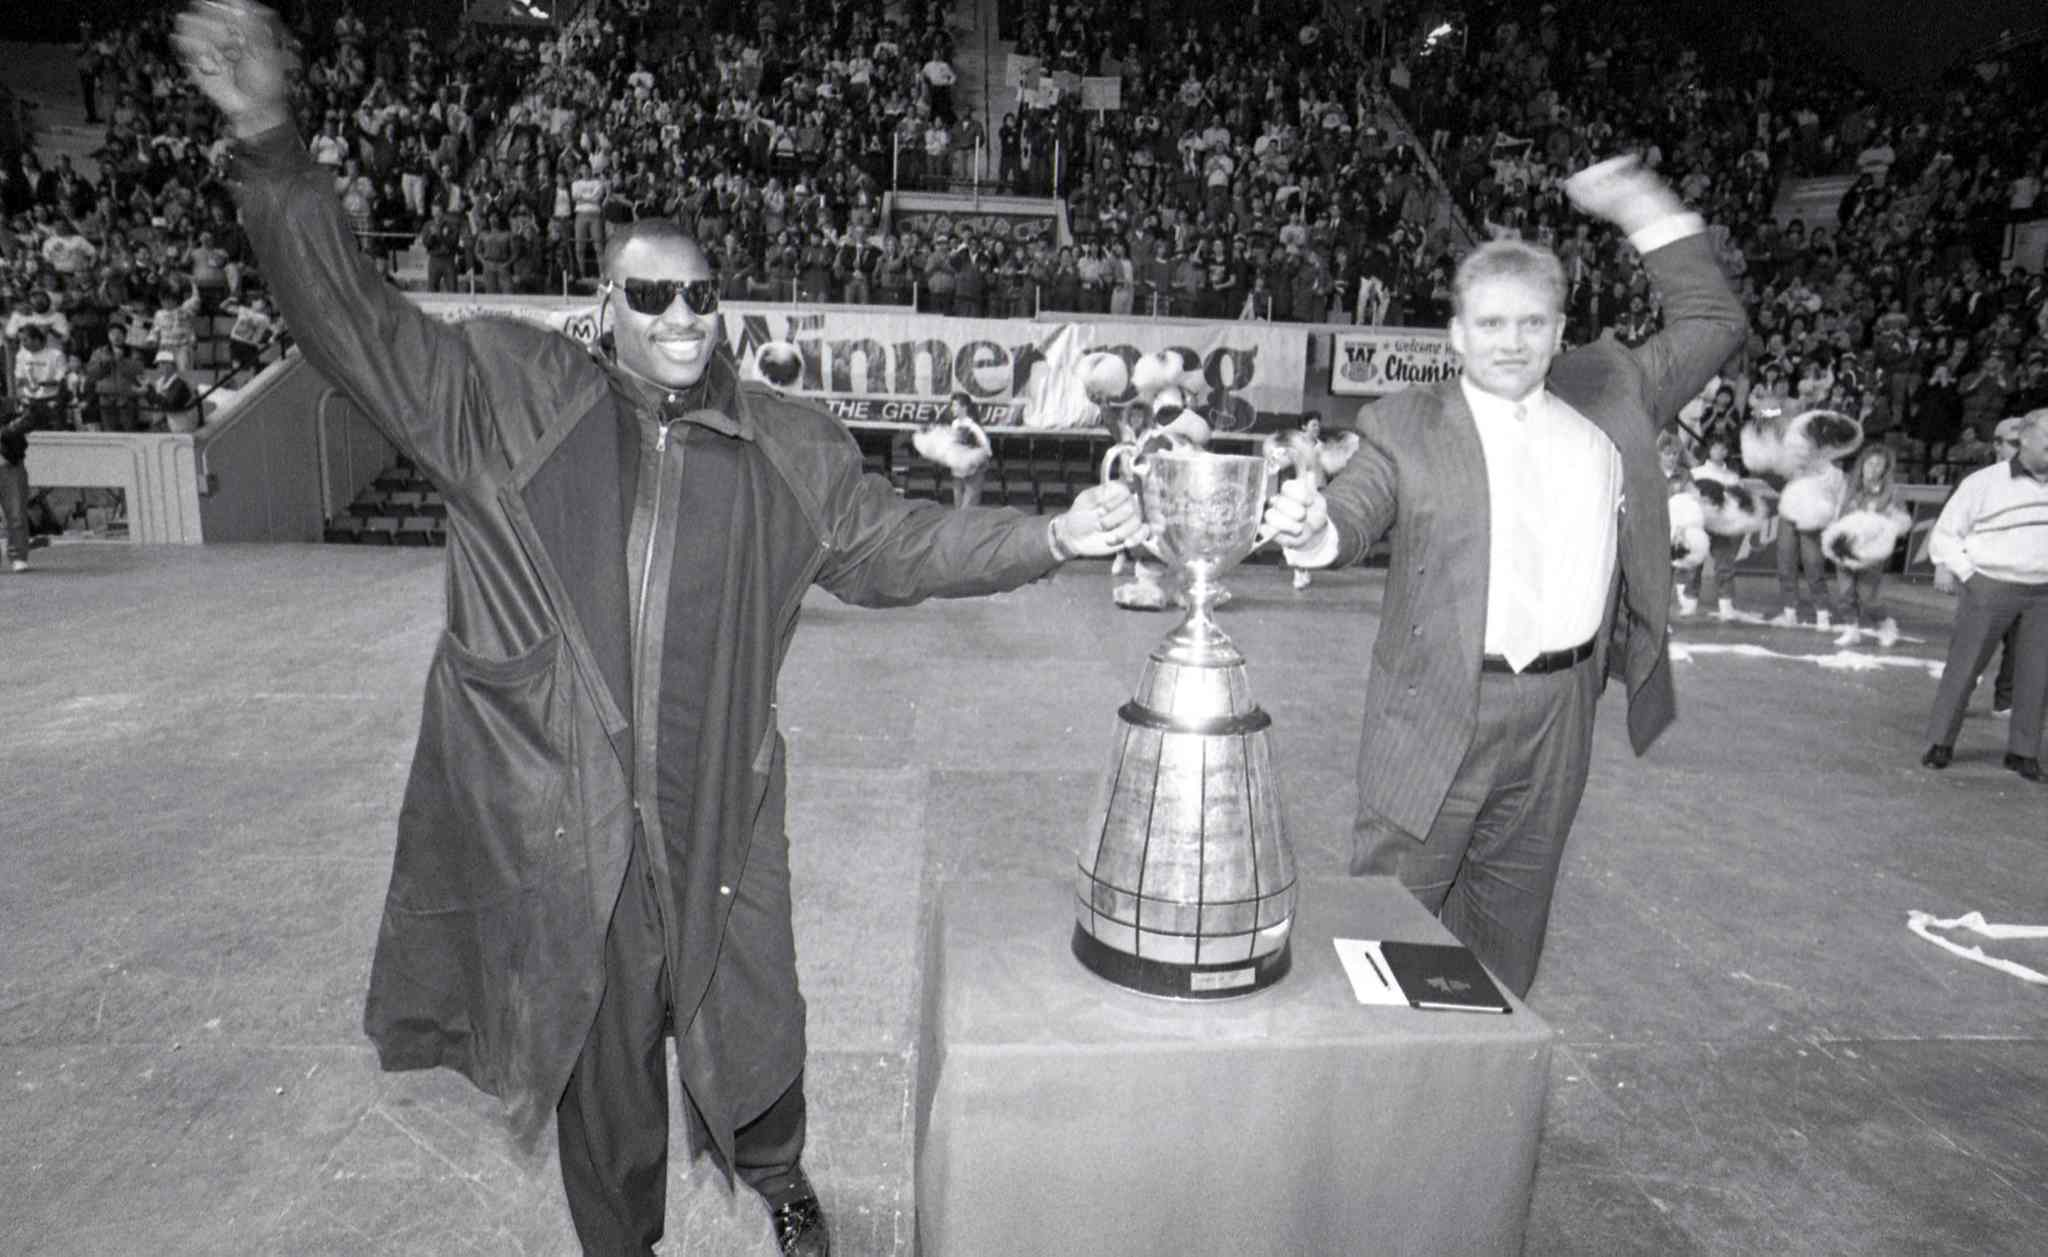 James West and Lyle Bauer at Winnipeg Blue Bomber Grey Cup rally at the Winnipeg Arena. November 26, 1990